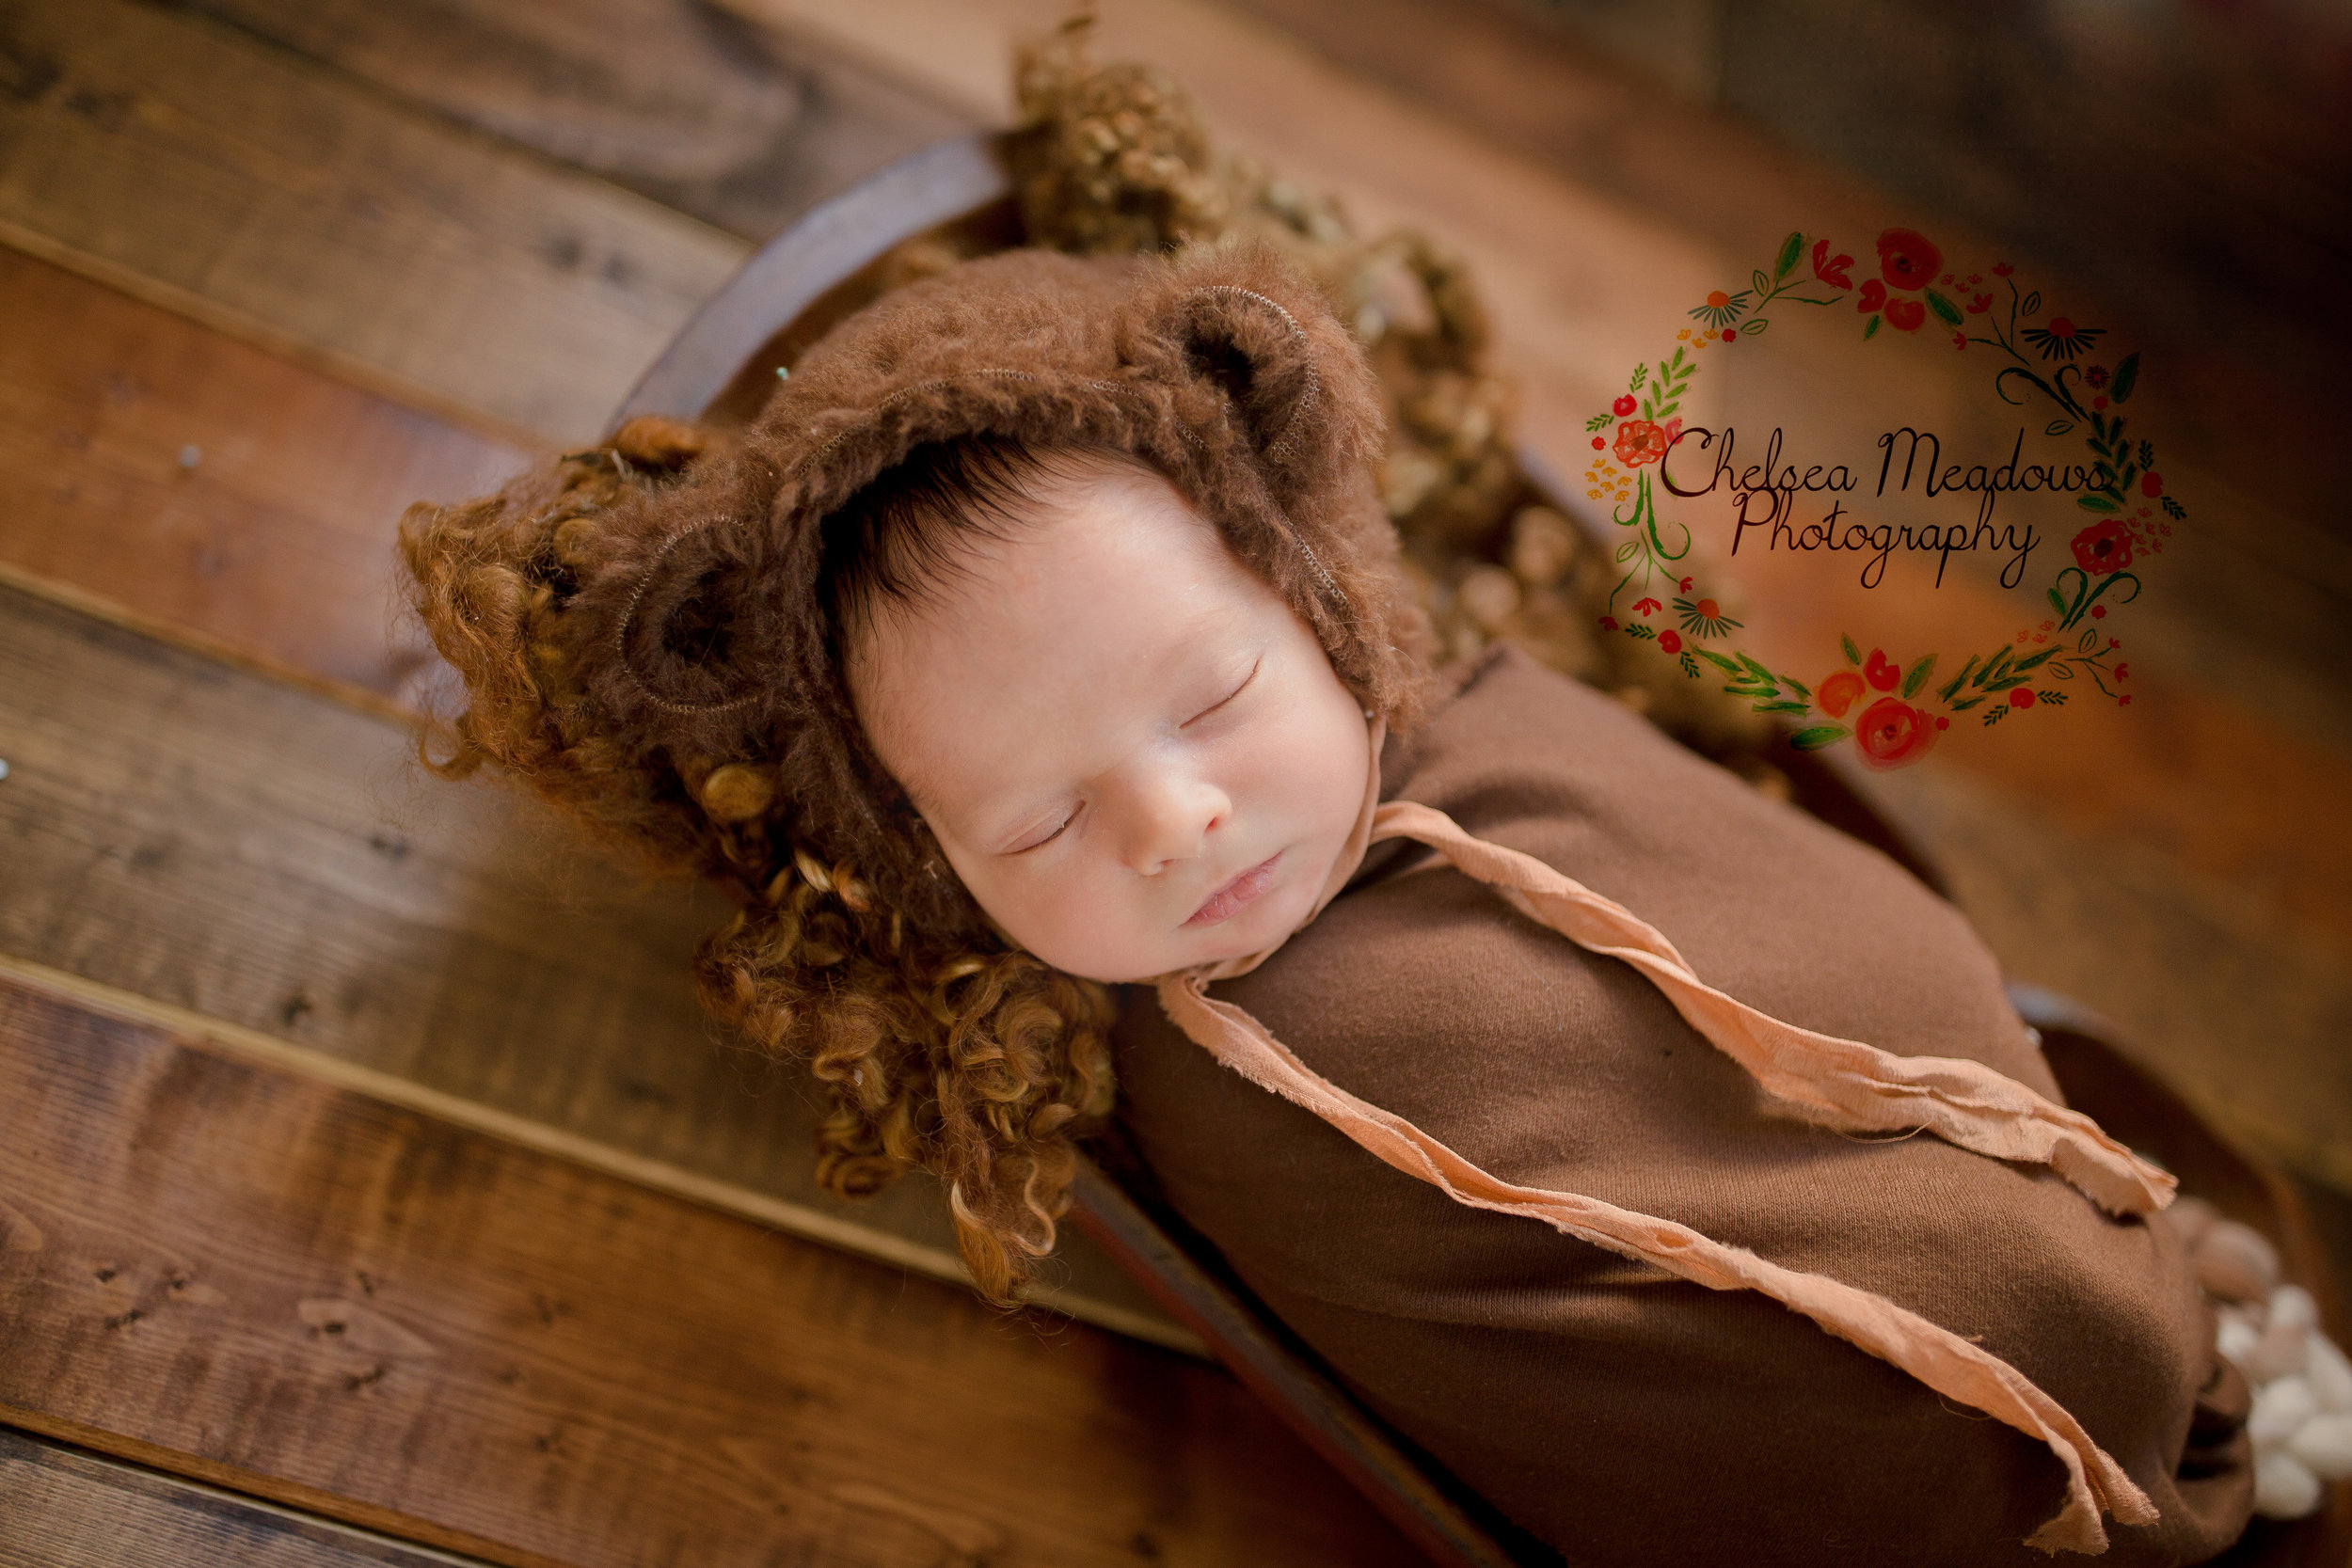 Rowan Newborn Session - Nashville Newborn Photographer - Chelsea Meadows Photography (8)_edited-1.jpg